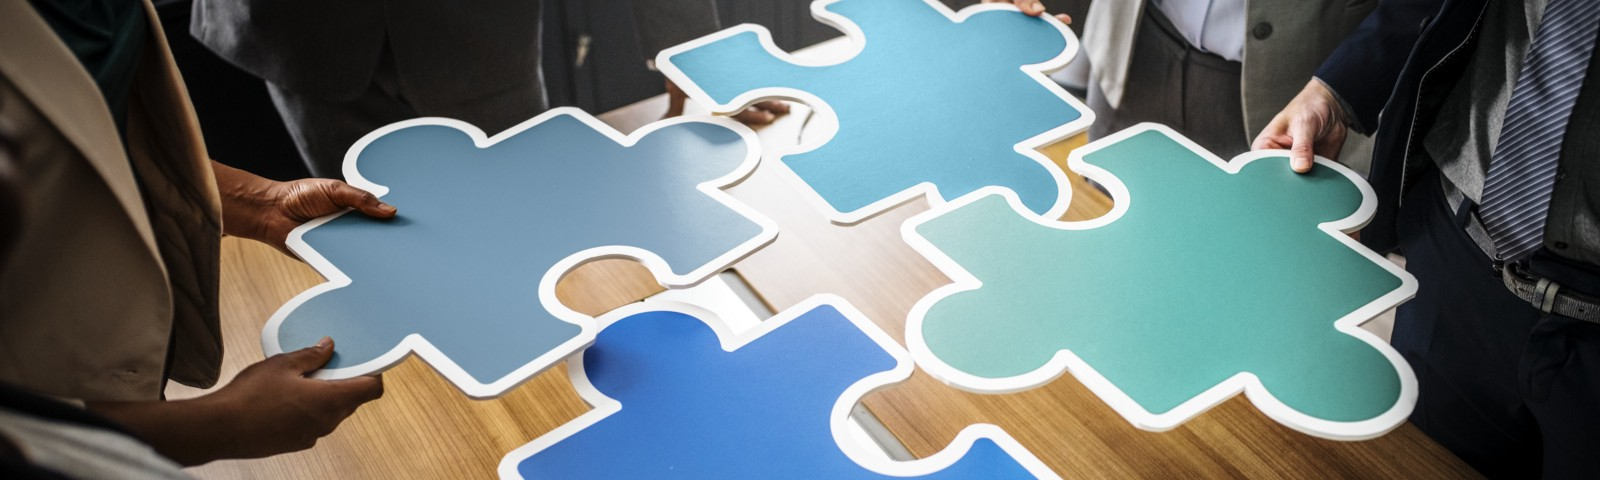 Four people, each holding a puzzle piece working together to solve the puzzle.